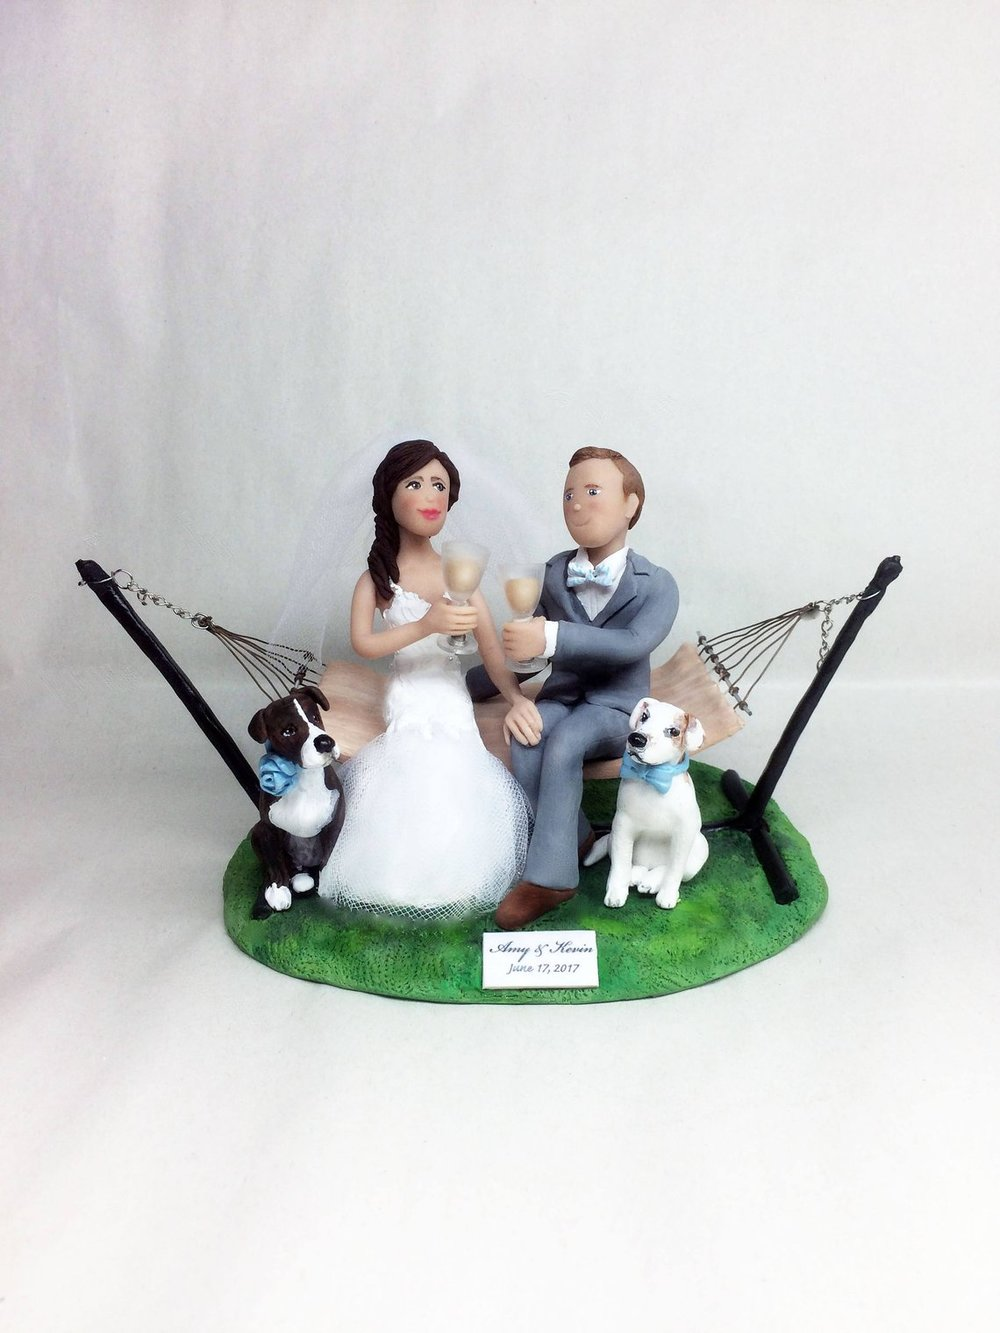 Custom Cake Toppers can be found on Etsy such as this one from Barbara's Clay Magic